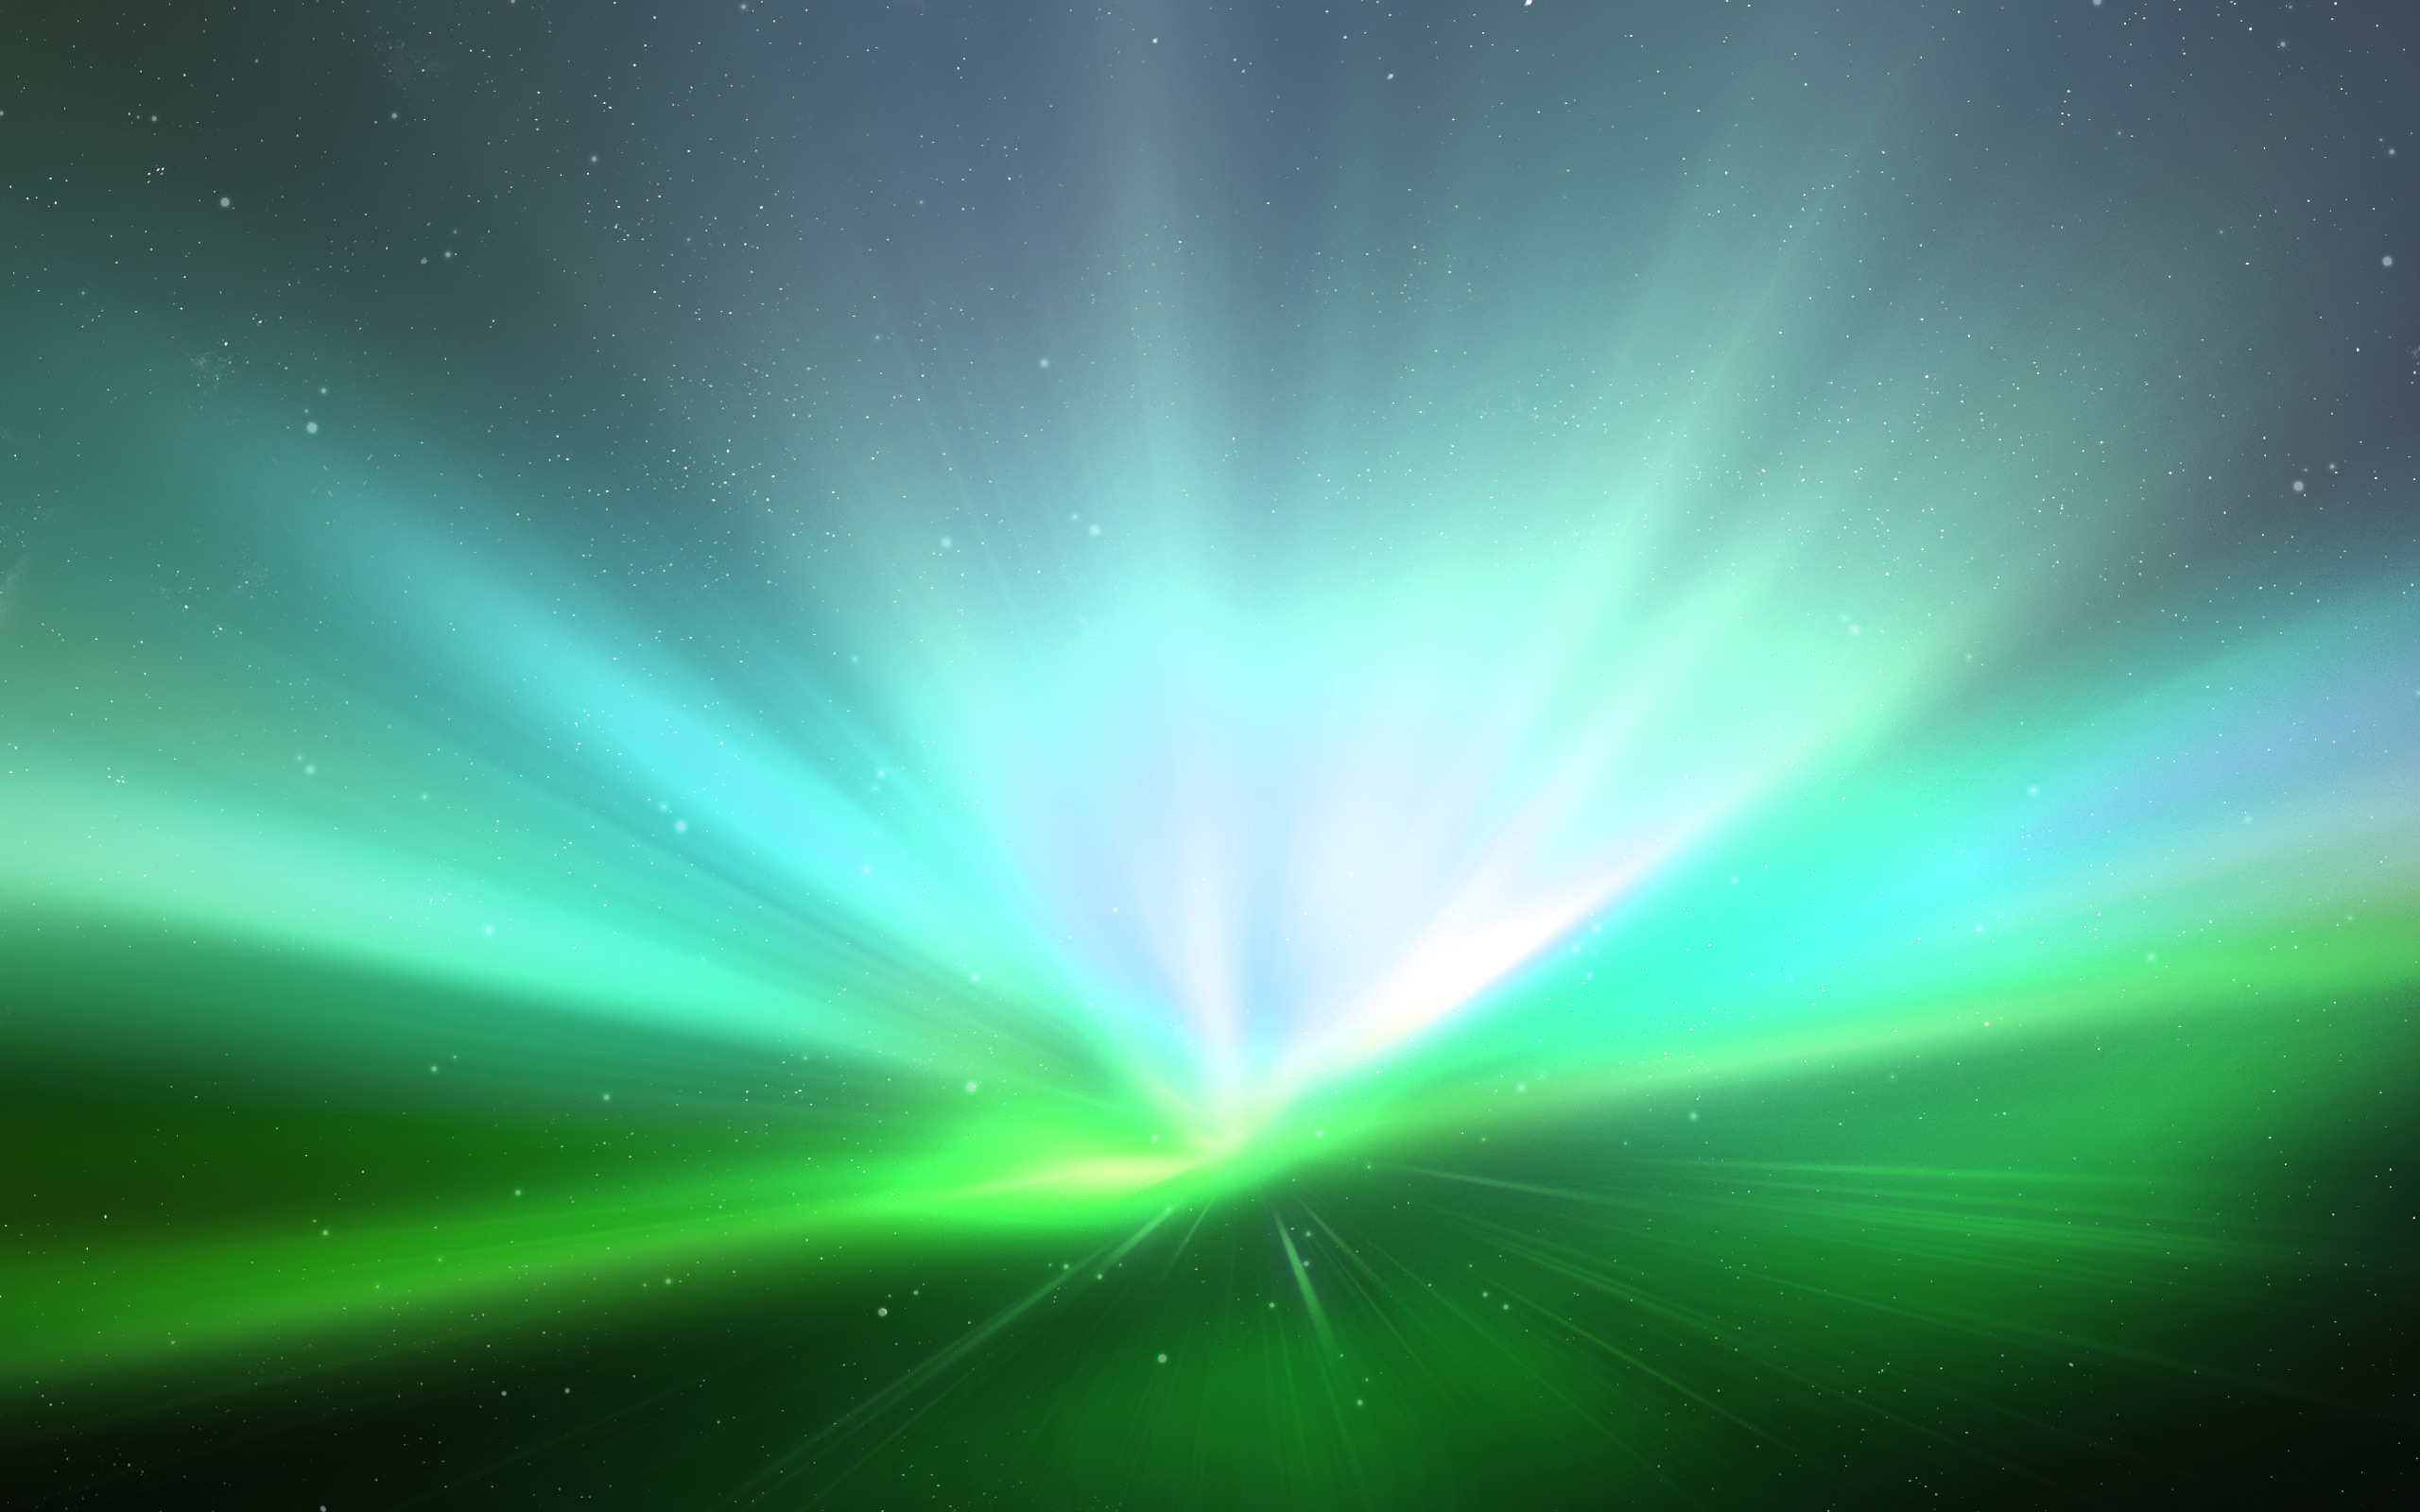 Green Abstract Background HD